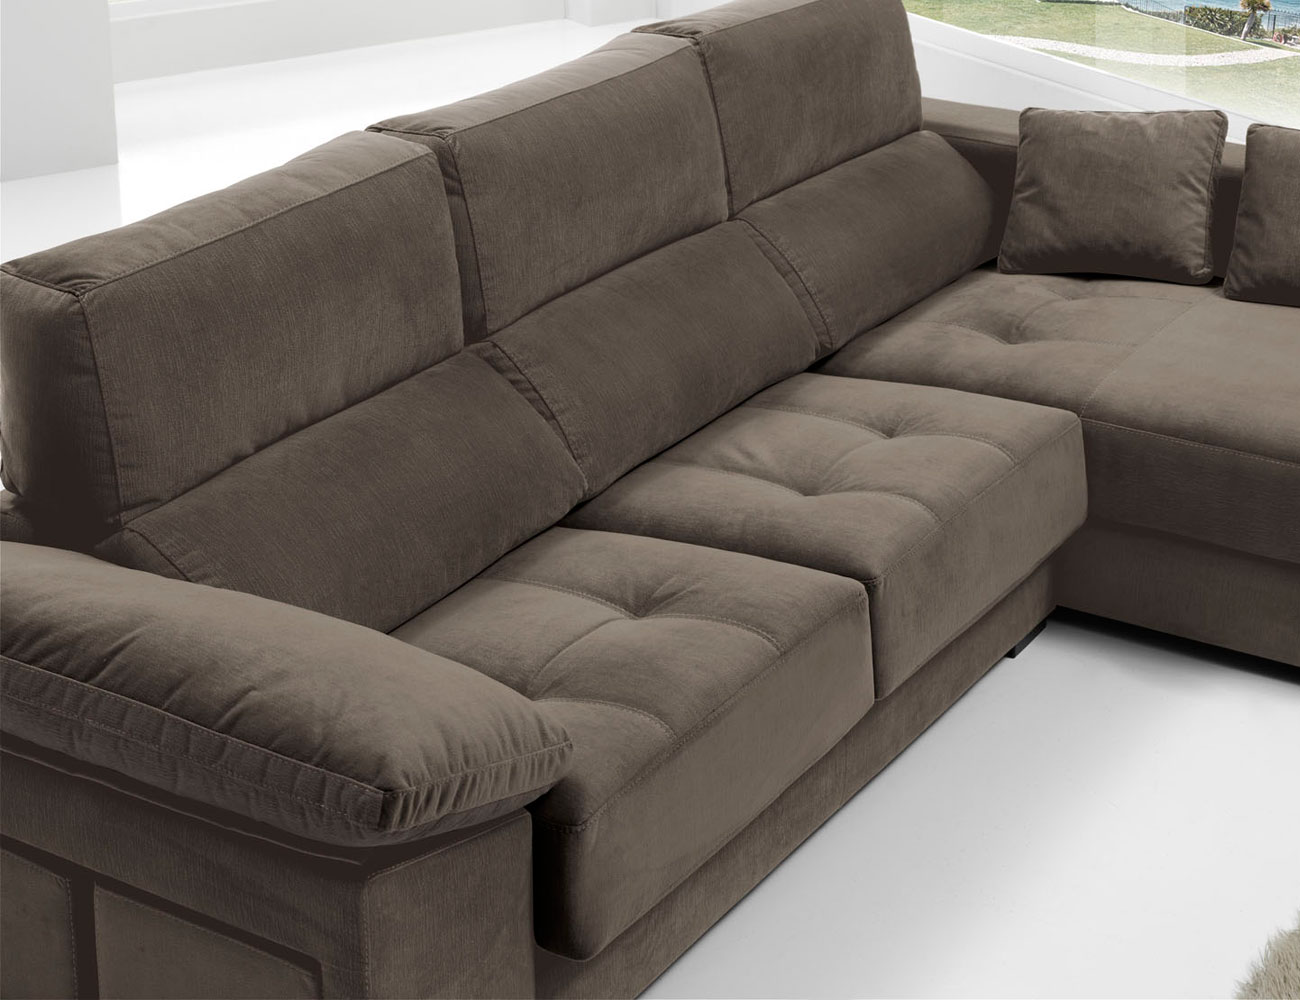 Sofa chaiselongue anti manchas bering pouf 233